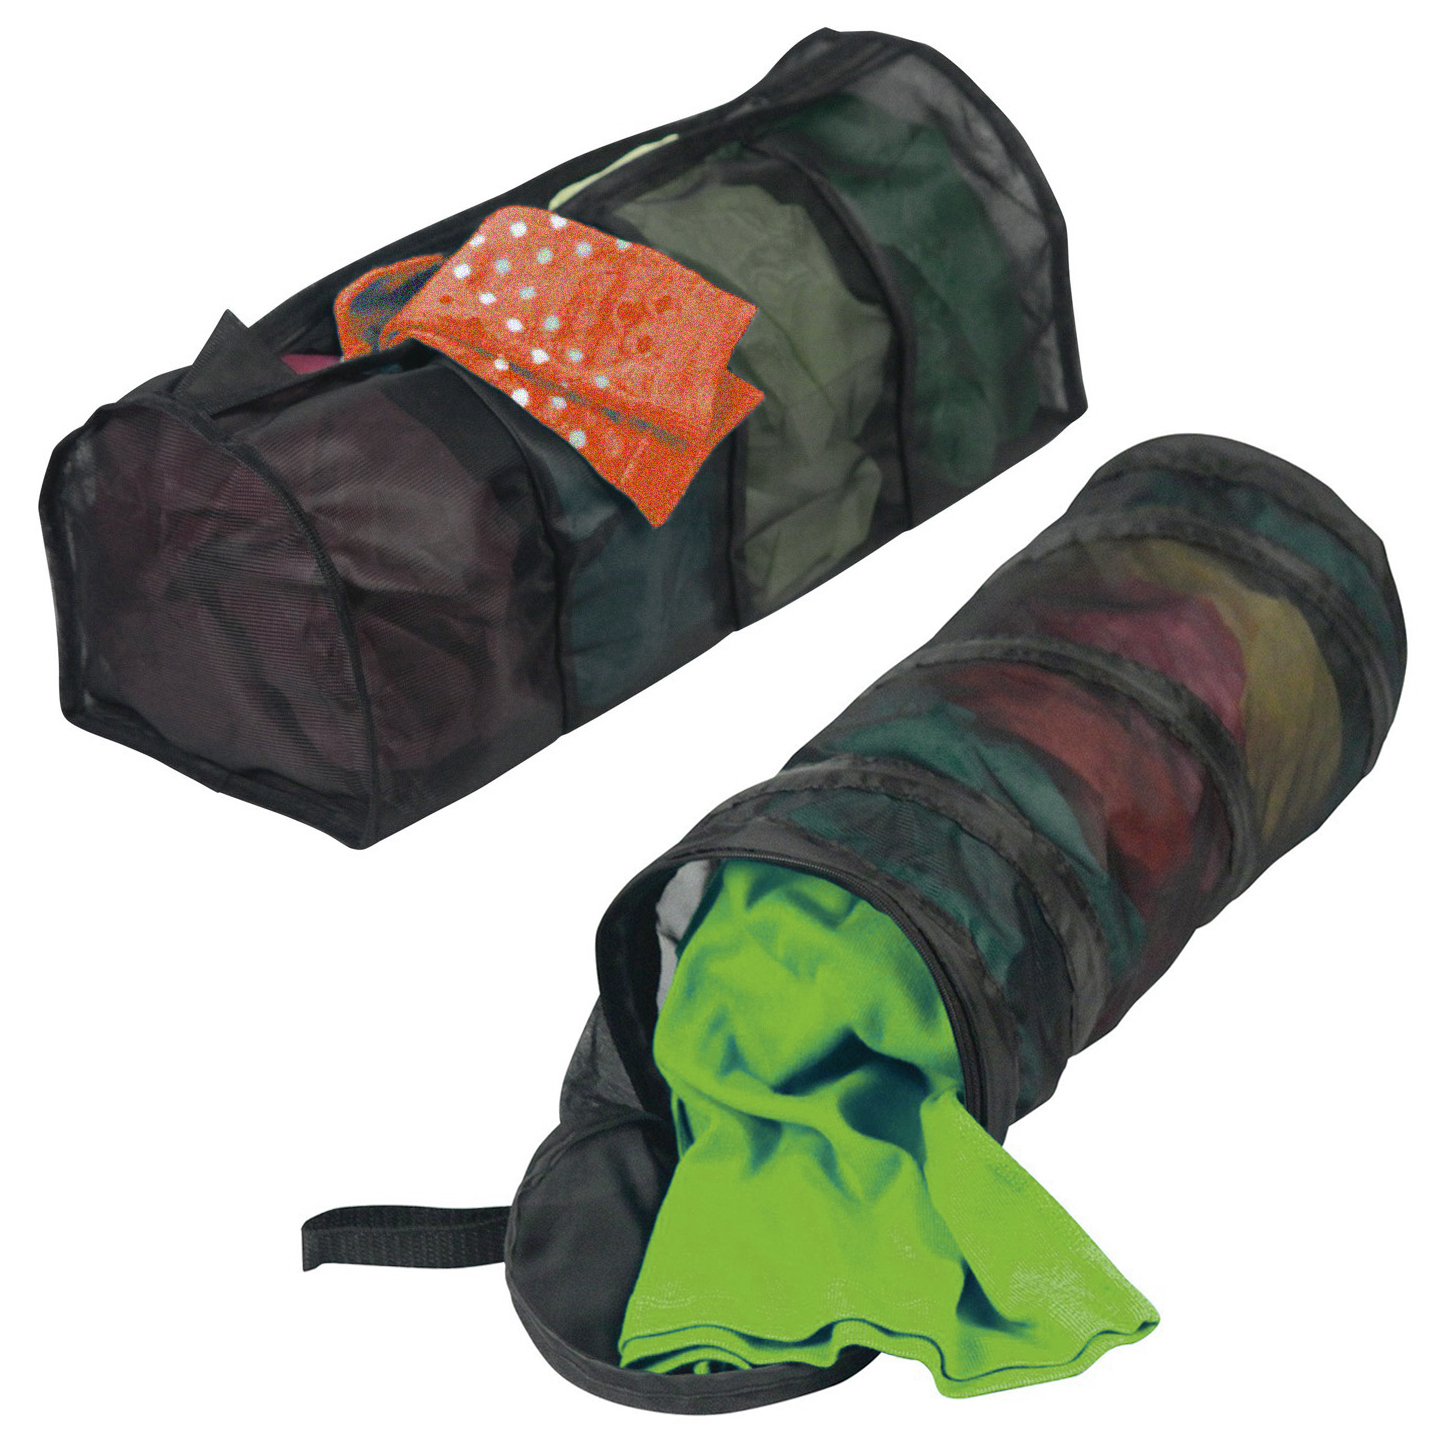 Set of 2 Large Mesh Laundry Wash Bags With Zipper Washing Machine For Delicates, Lingerie & Hosiery